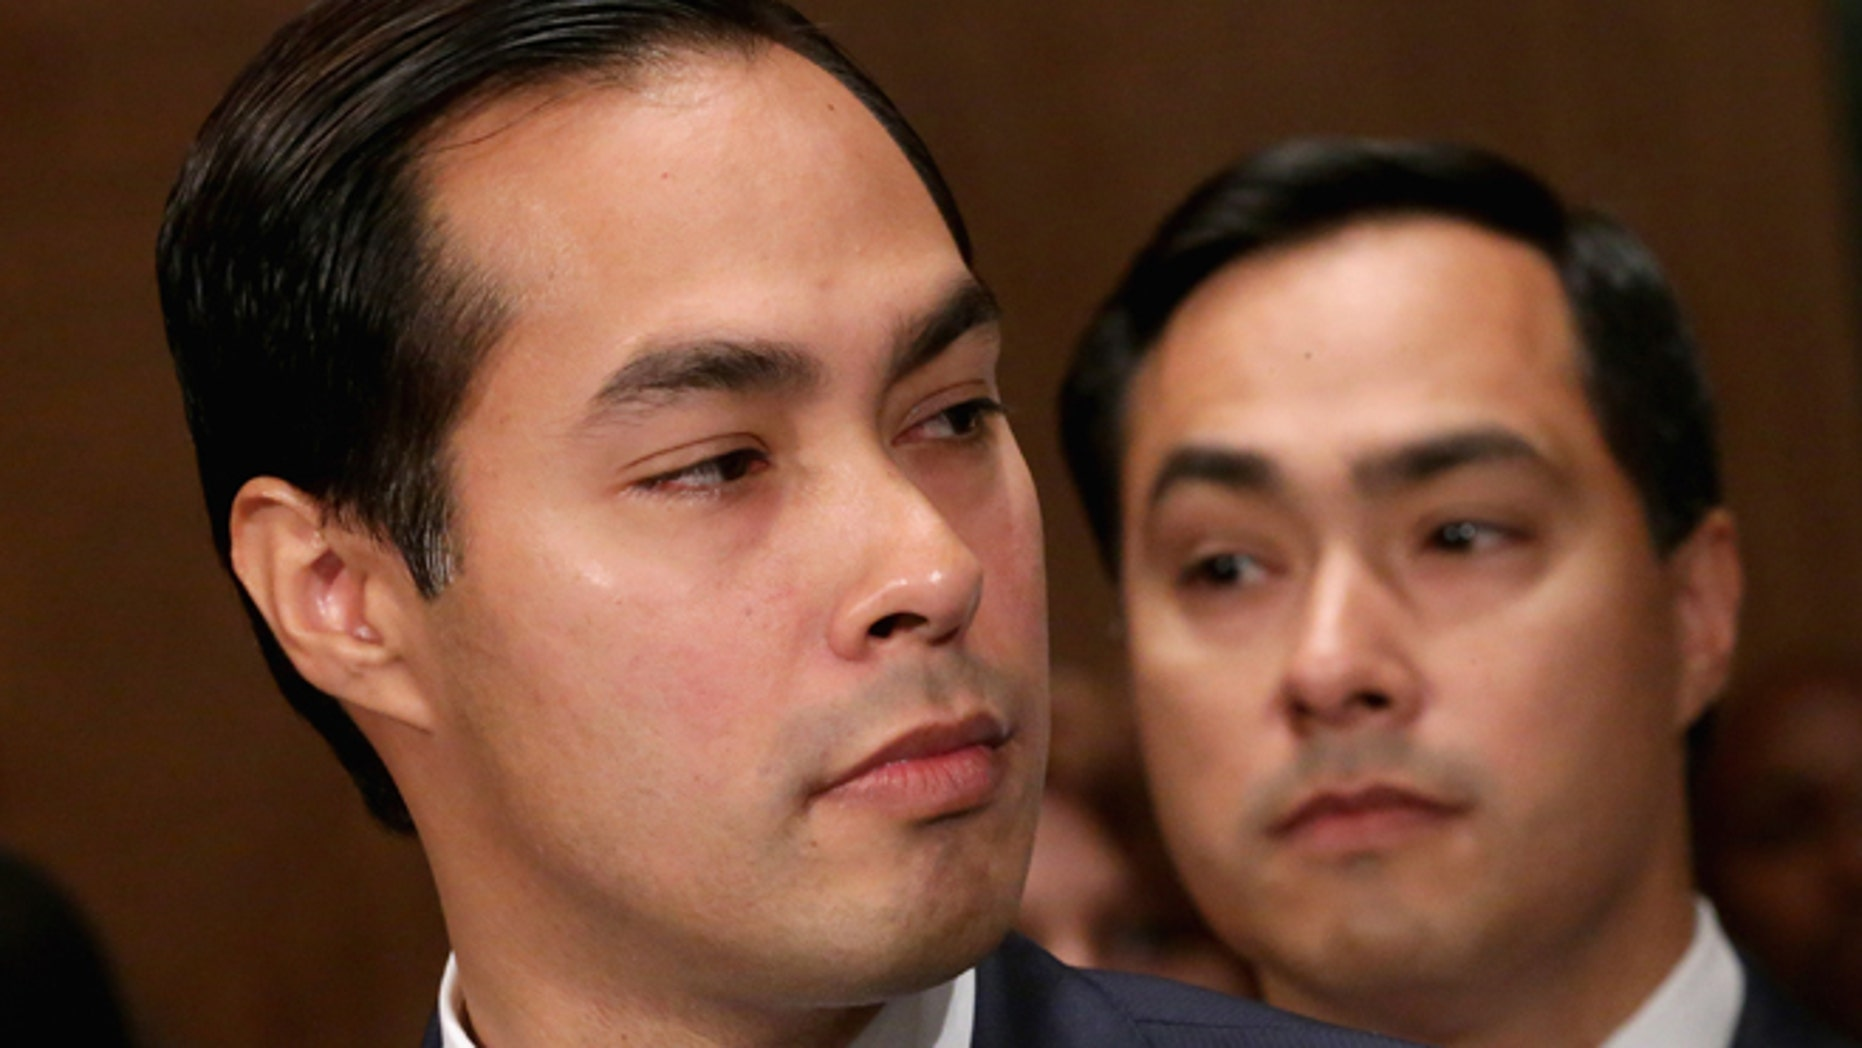 WASHINGTON, DC - JUNE 17:  Mayor Julian Castro (L) testifies during his confirmation hearing before the Senate Banking, Housing and Urban Affairs Committee with his twin brother, Rep. Joaquin Castro (D-TX), in the background June 17, 2014 in Washington, DC. The current mayor of San Antonio, Texas, Castro has not faced serious opposition in the Senate.  (Photo by Chip Somodevilla/Getty Images)